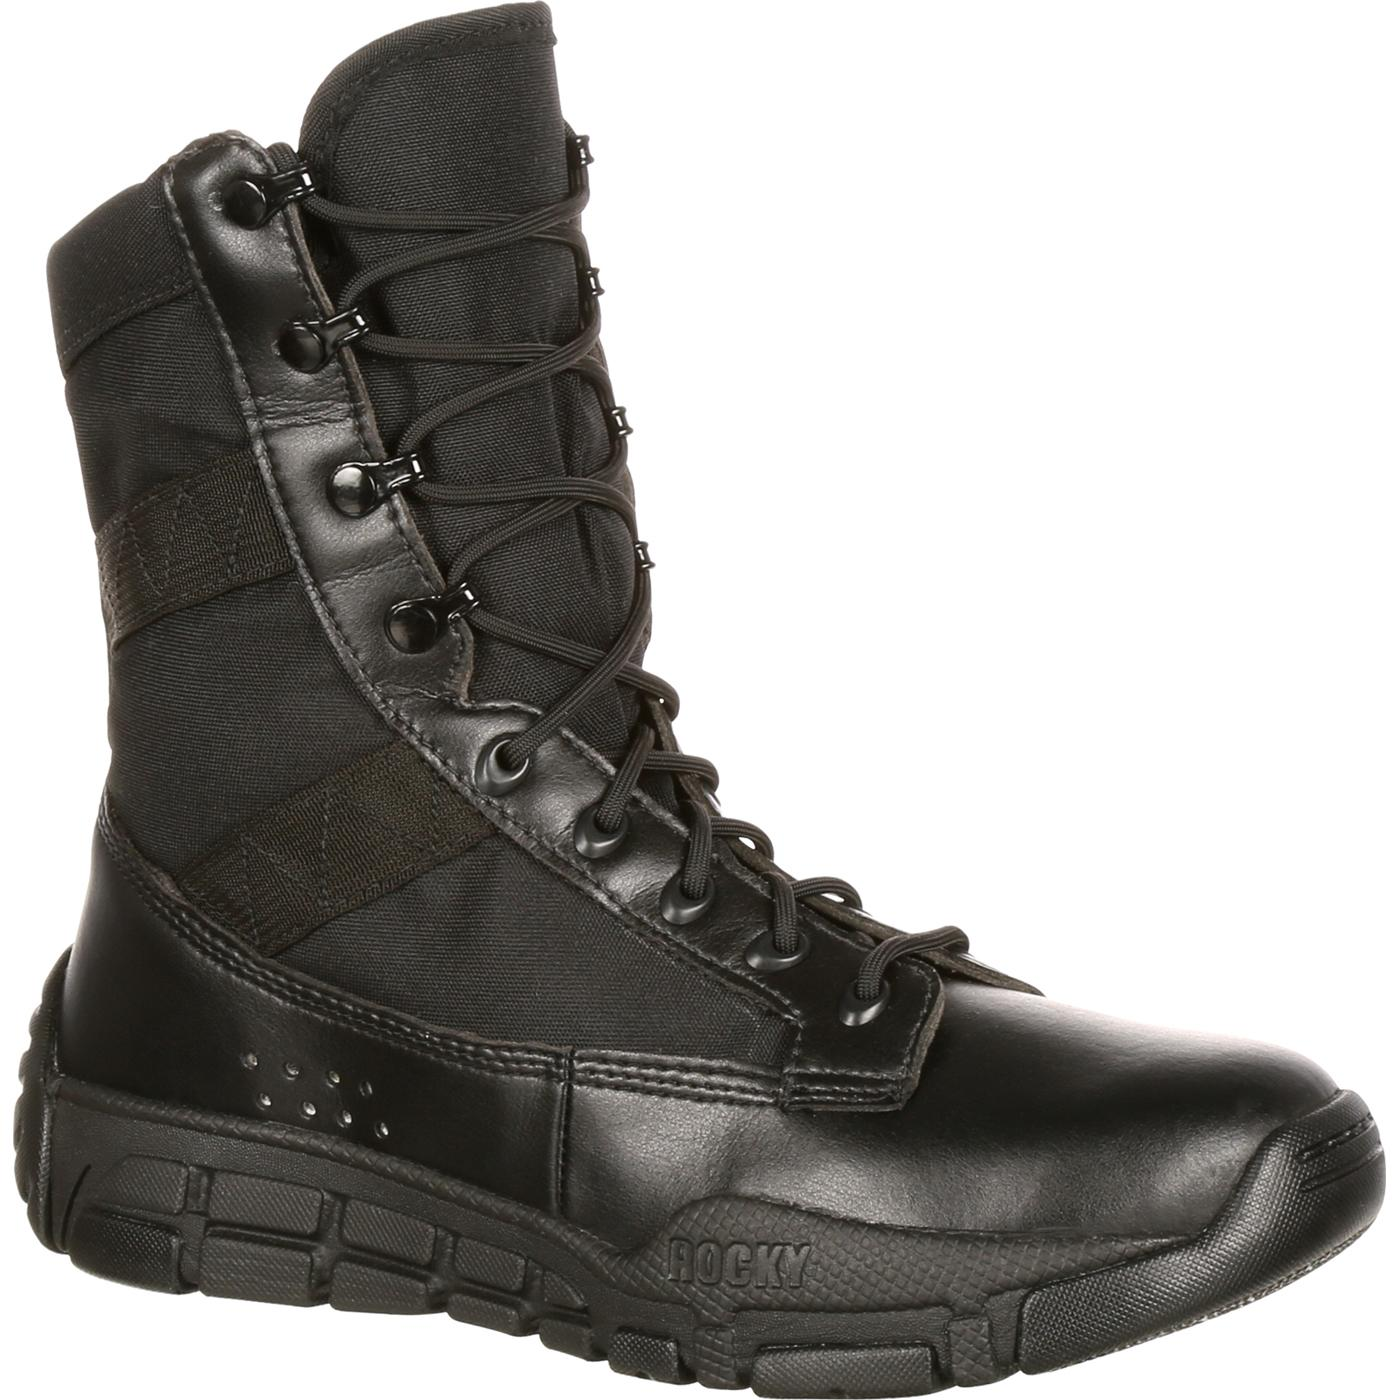 Rocky C4t Men S Military Inspired Black Duty Boots Ry008